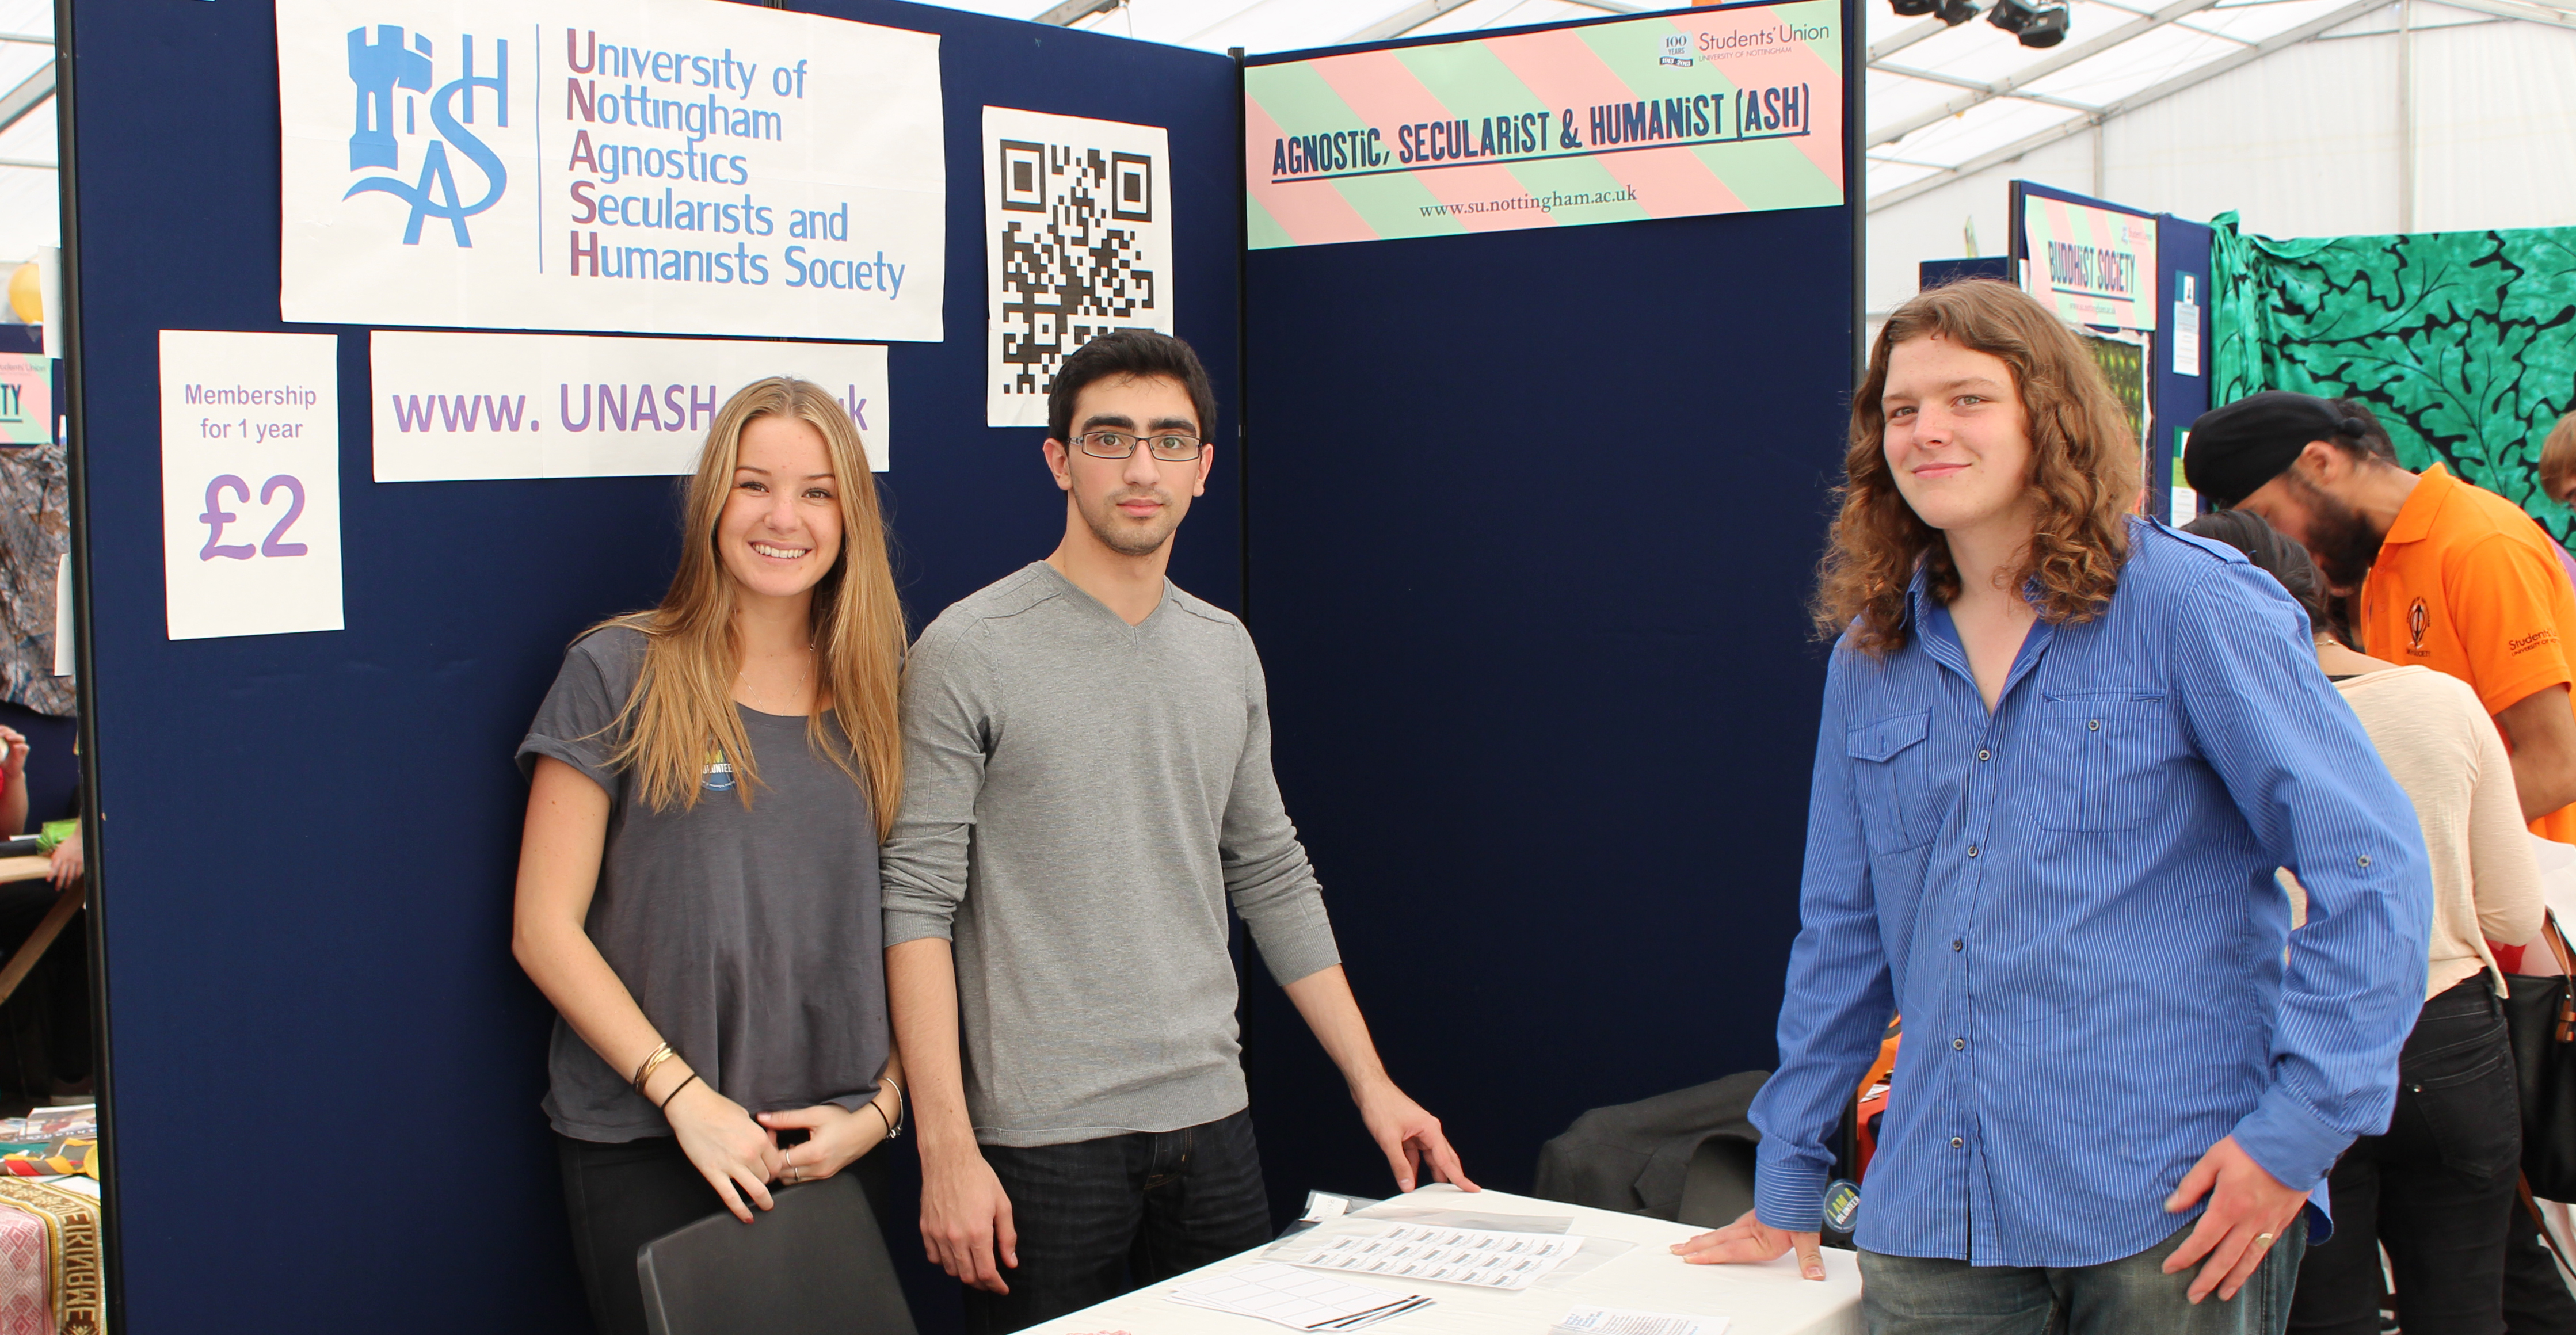 University of Nottingham Agnostics, Secularists and Humanists Society (UNASH) at the Welcome Fair